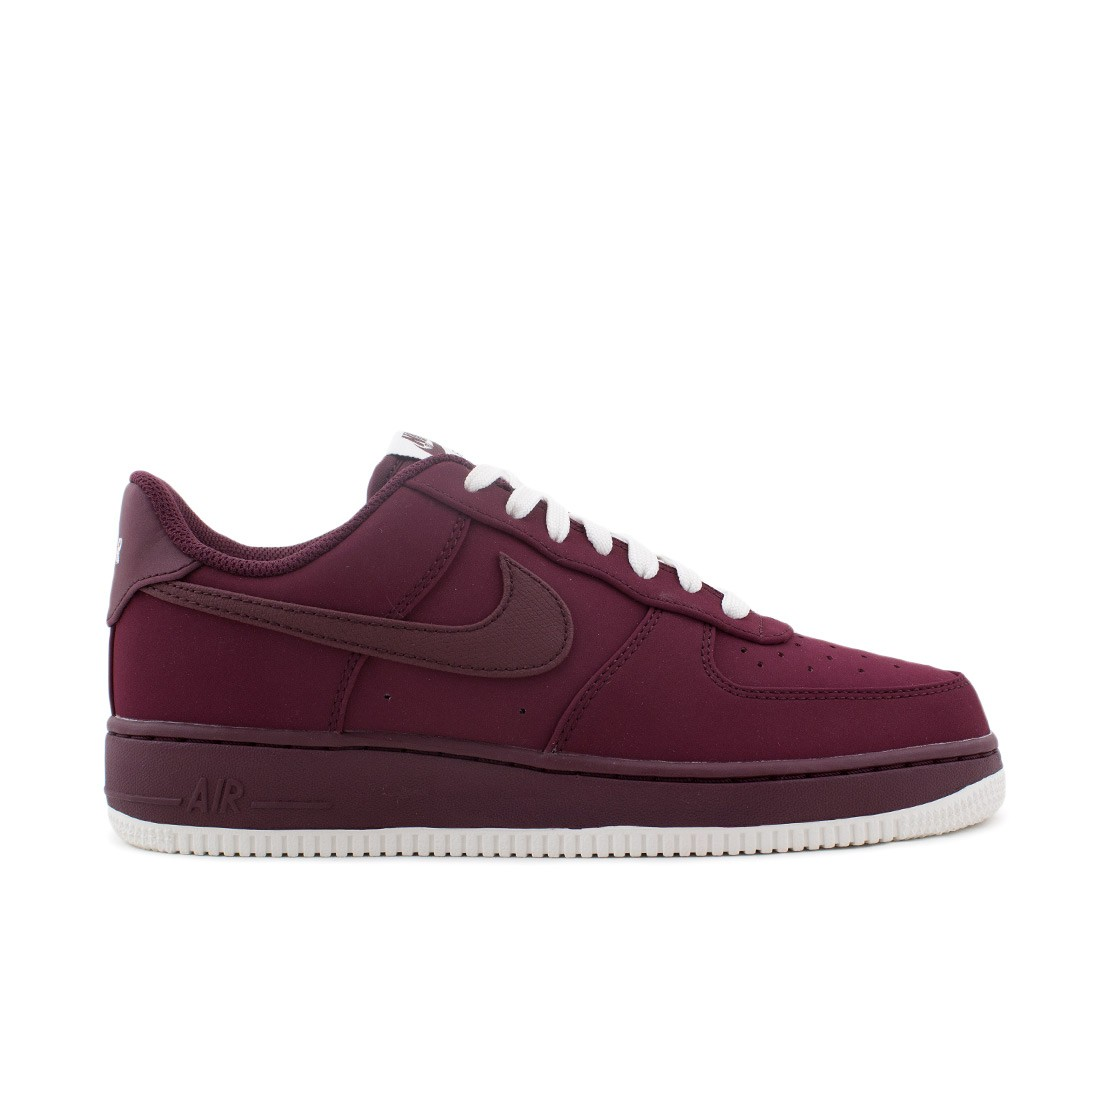 Air Force Air Nike Bordeaux Nike Force cqR4LAj35S